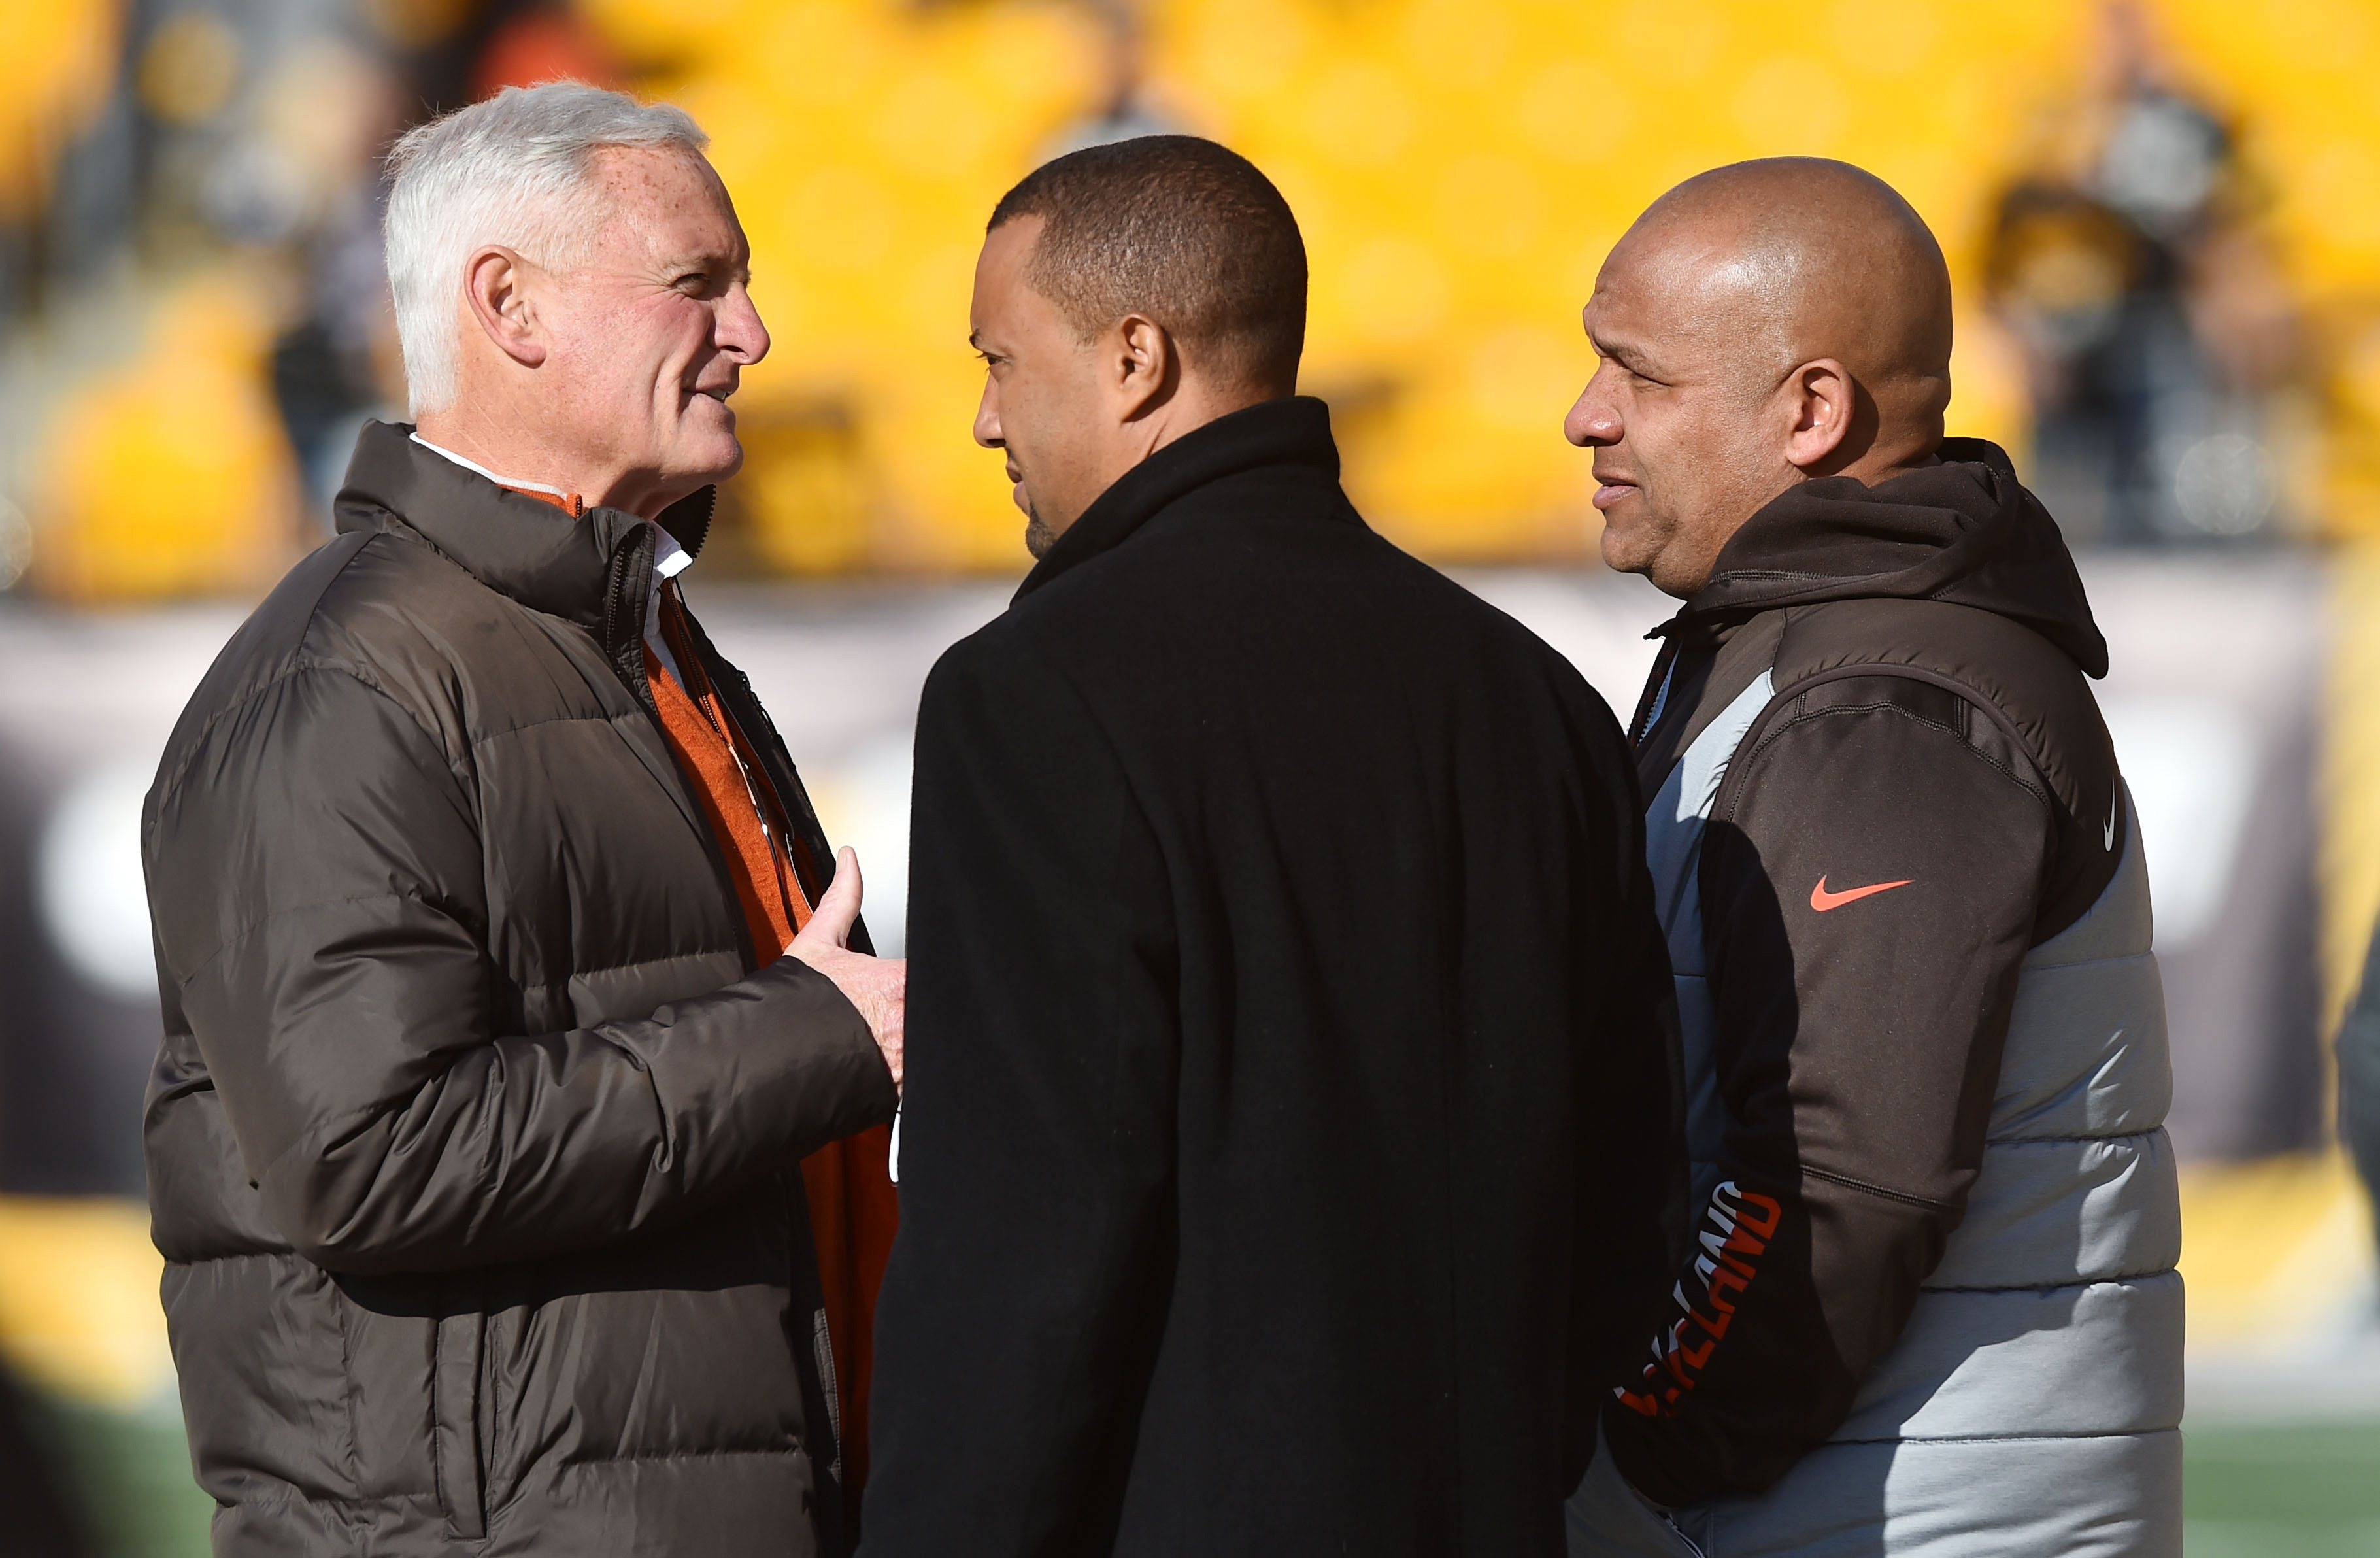 9781047-nfl-cleveland-browns-at-pittsburgh-steelers